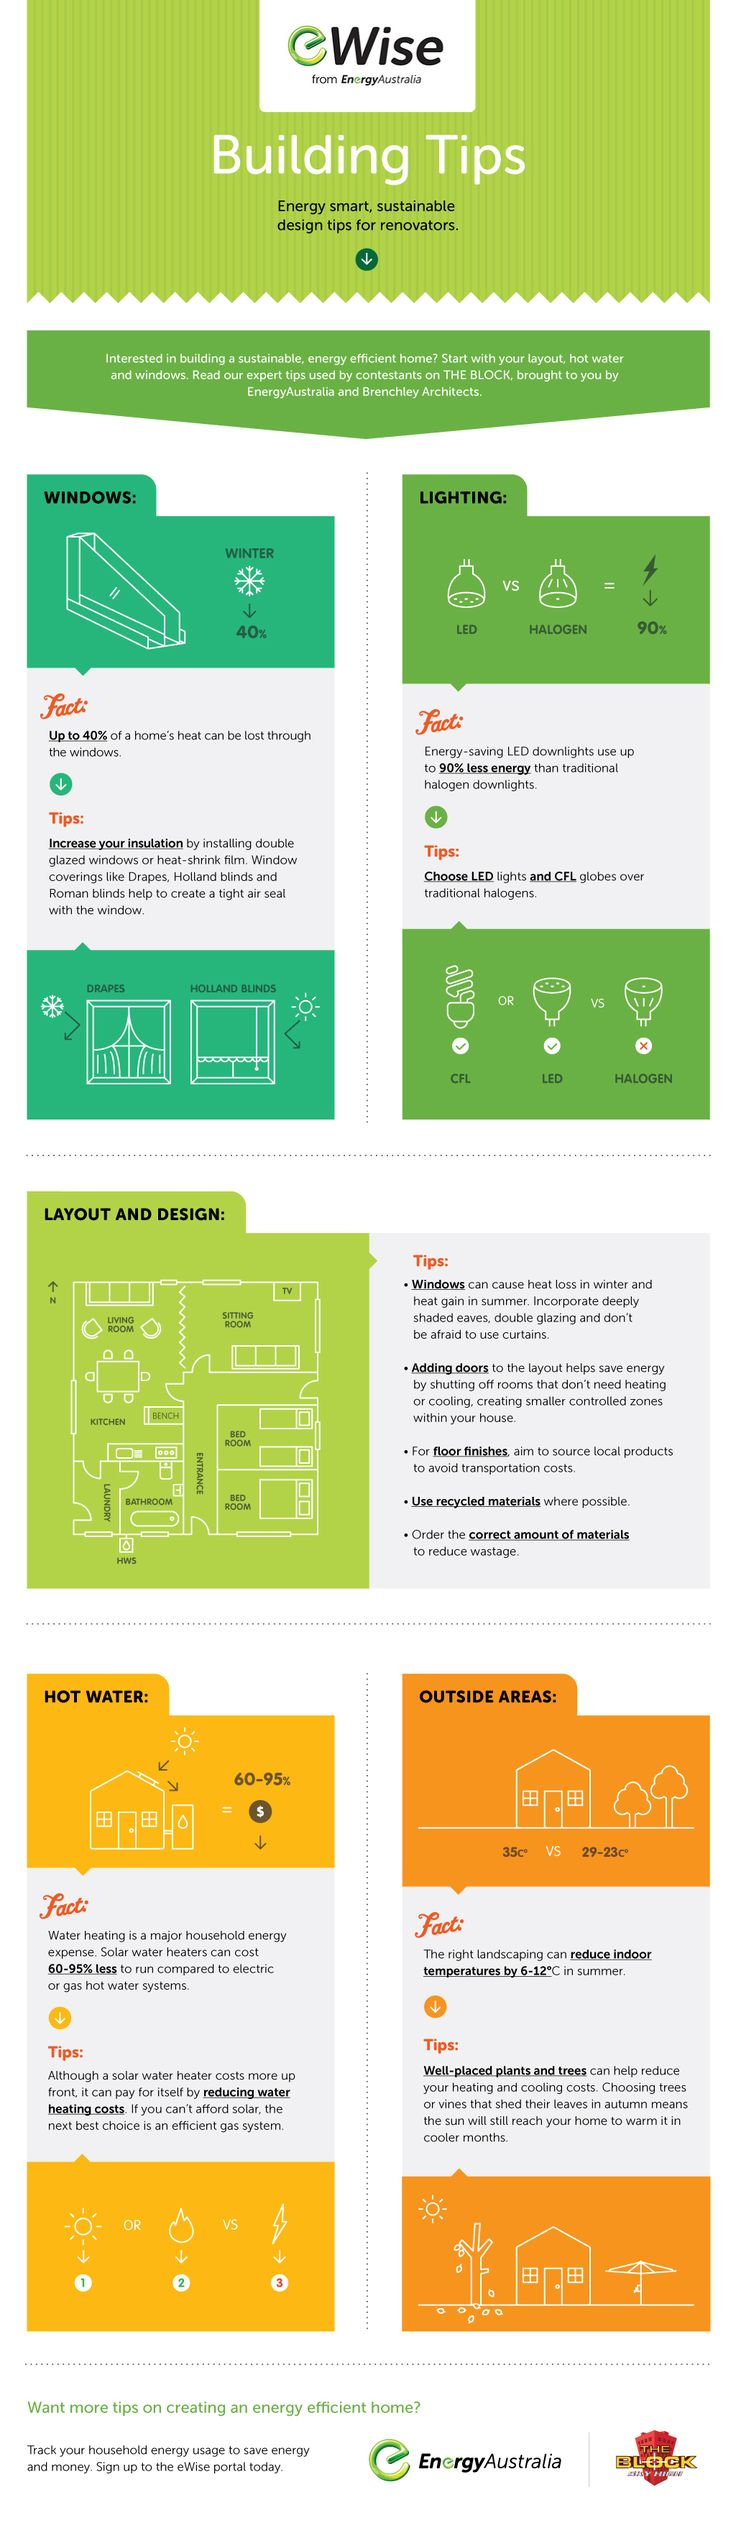 Here's some tips on how to build an sustainable, energy efficient house courtesy of eWise, The Block & Brenchley Architects.  #eWise